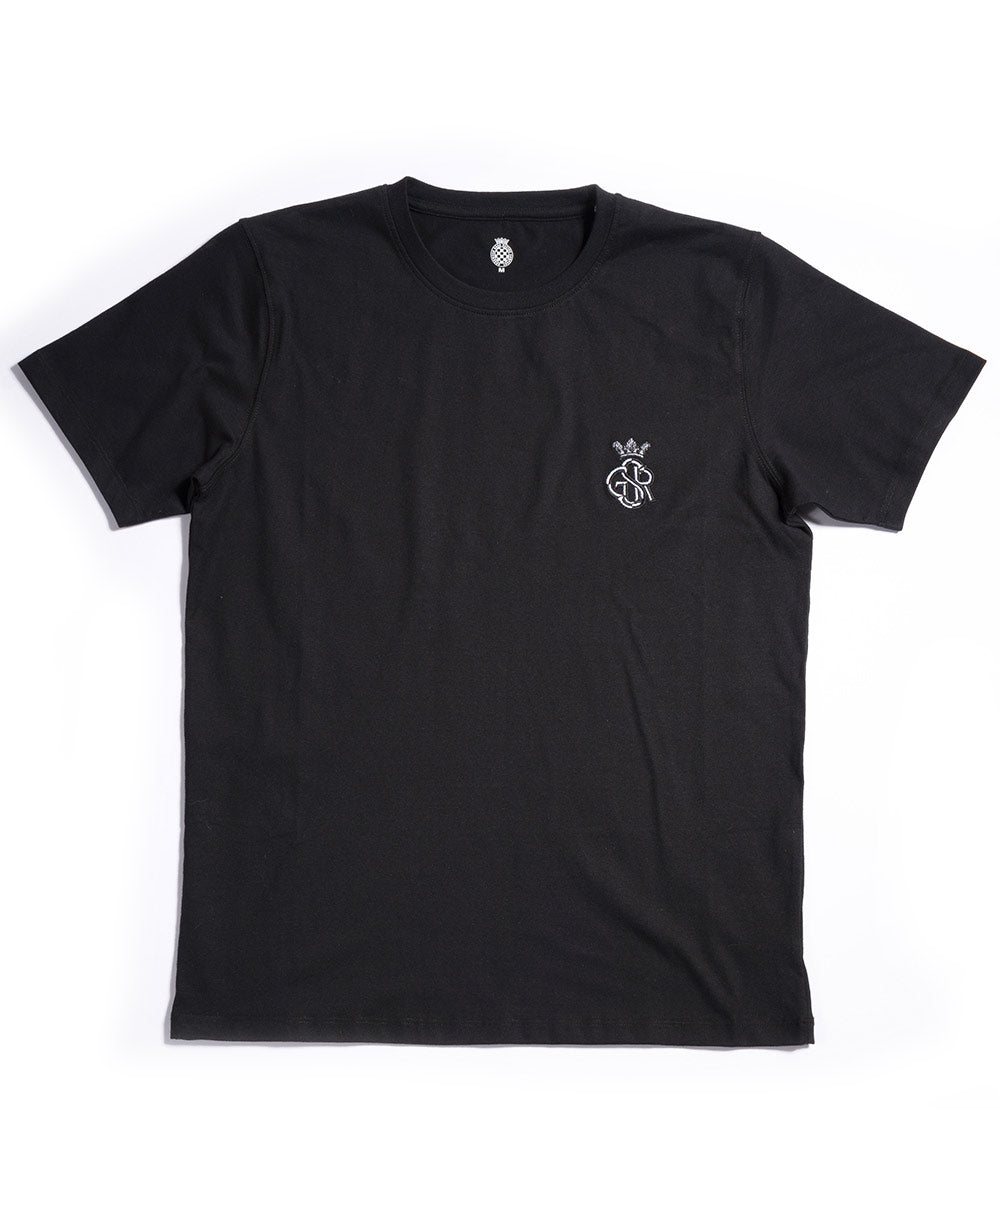 GSR Men's Black T-Shirt